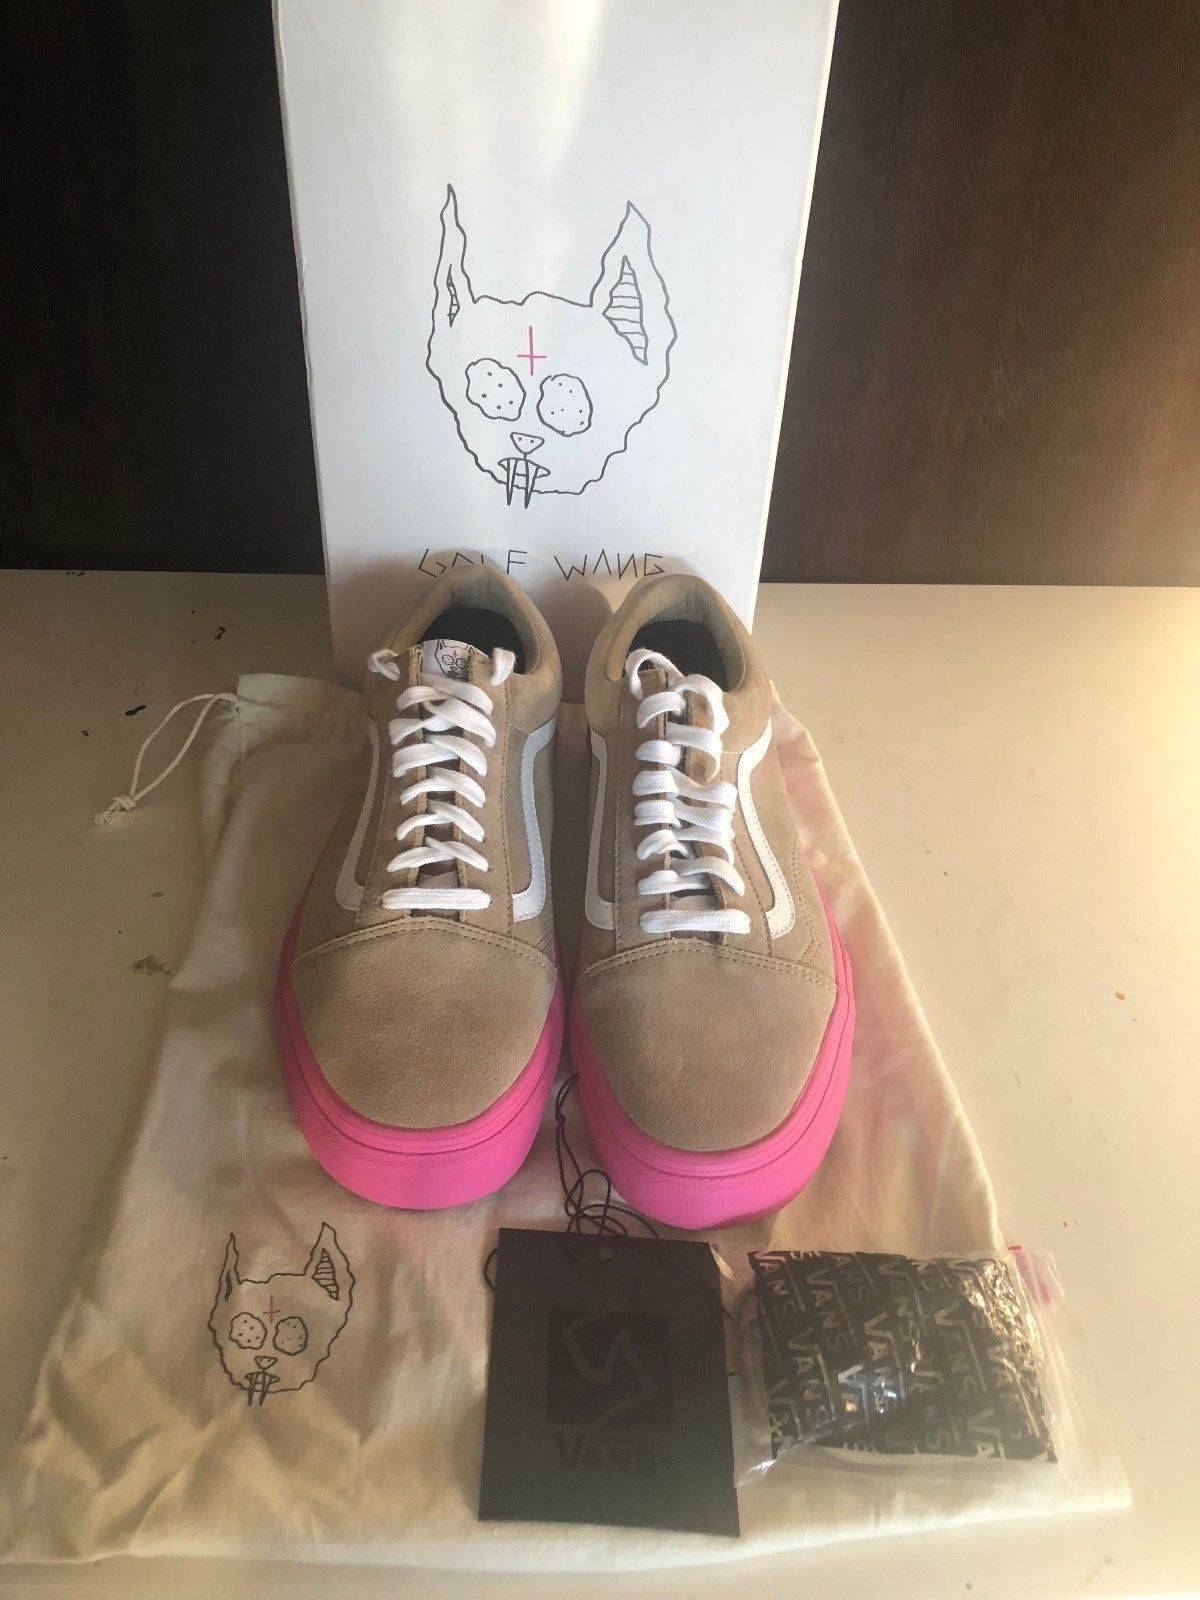 b7a9ec4bc9865c Vans Old Skool Pro X Golf Wang Syndicate Size 11.5 Tyler The Creator Brown  Pink